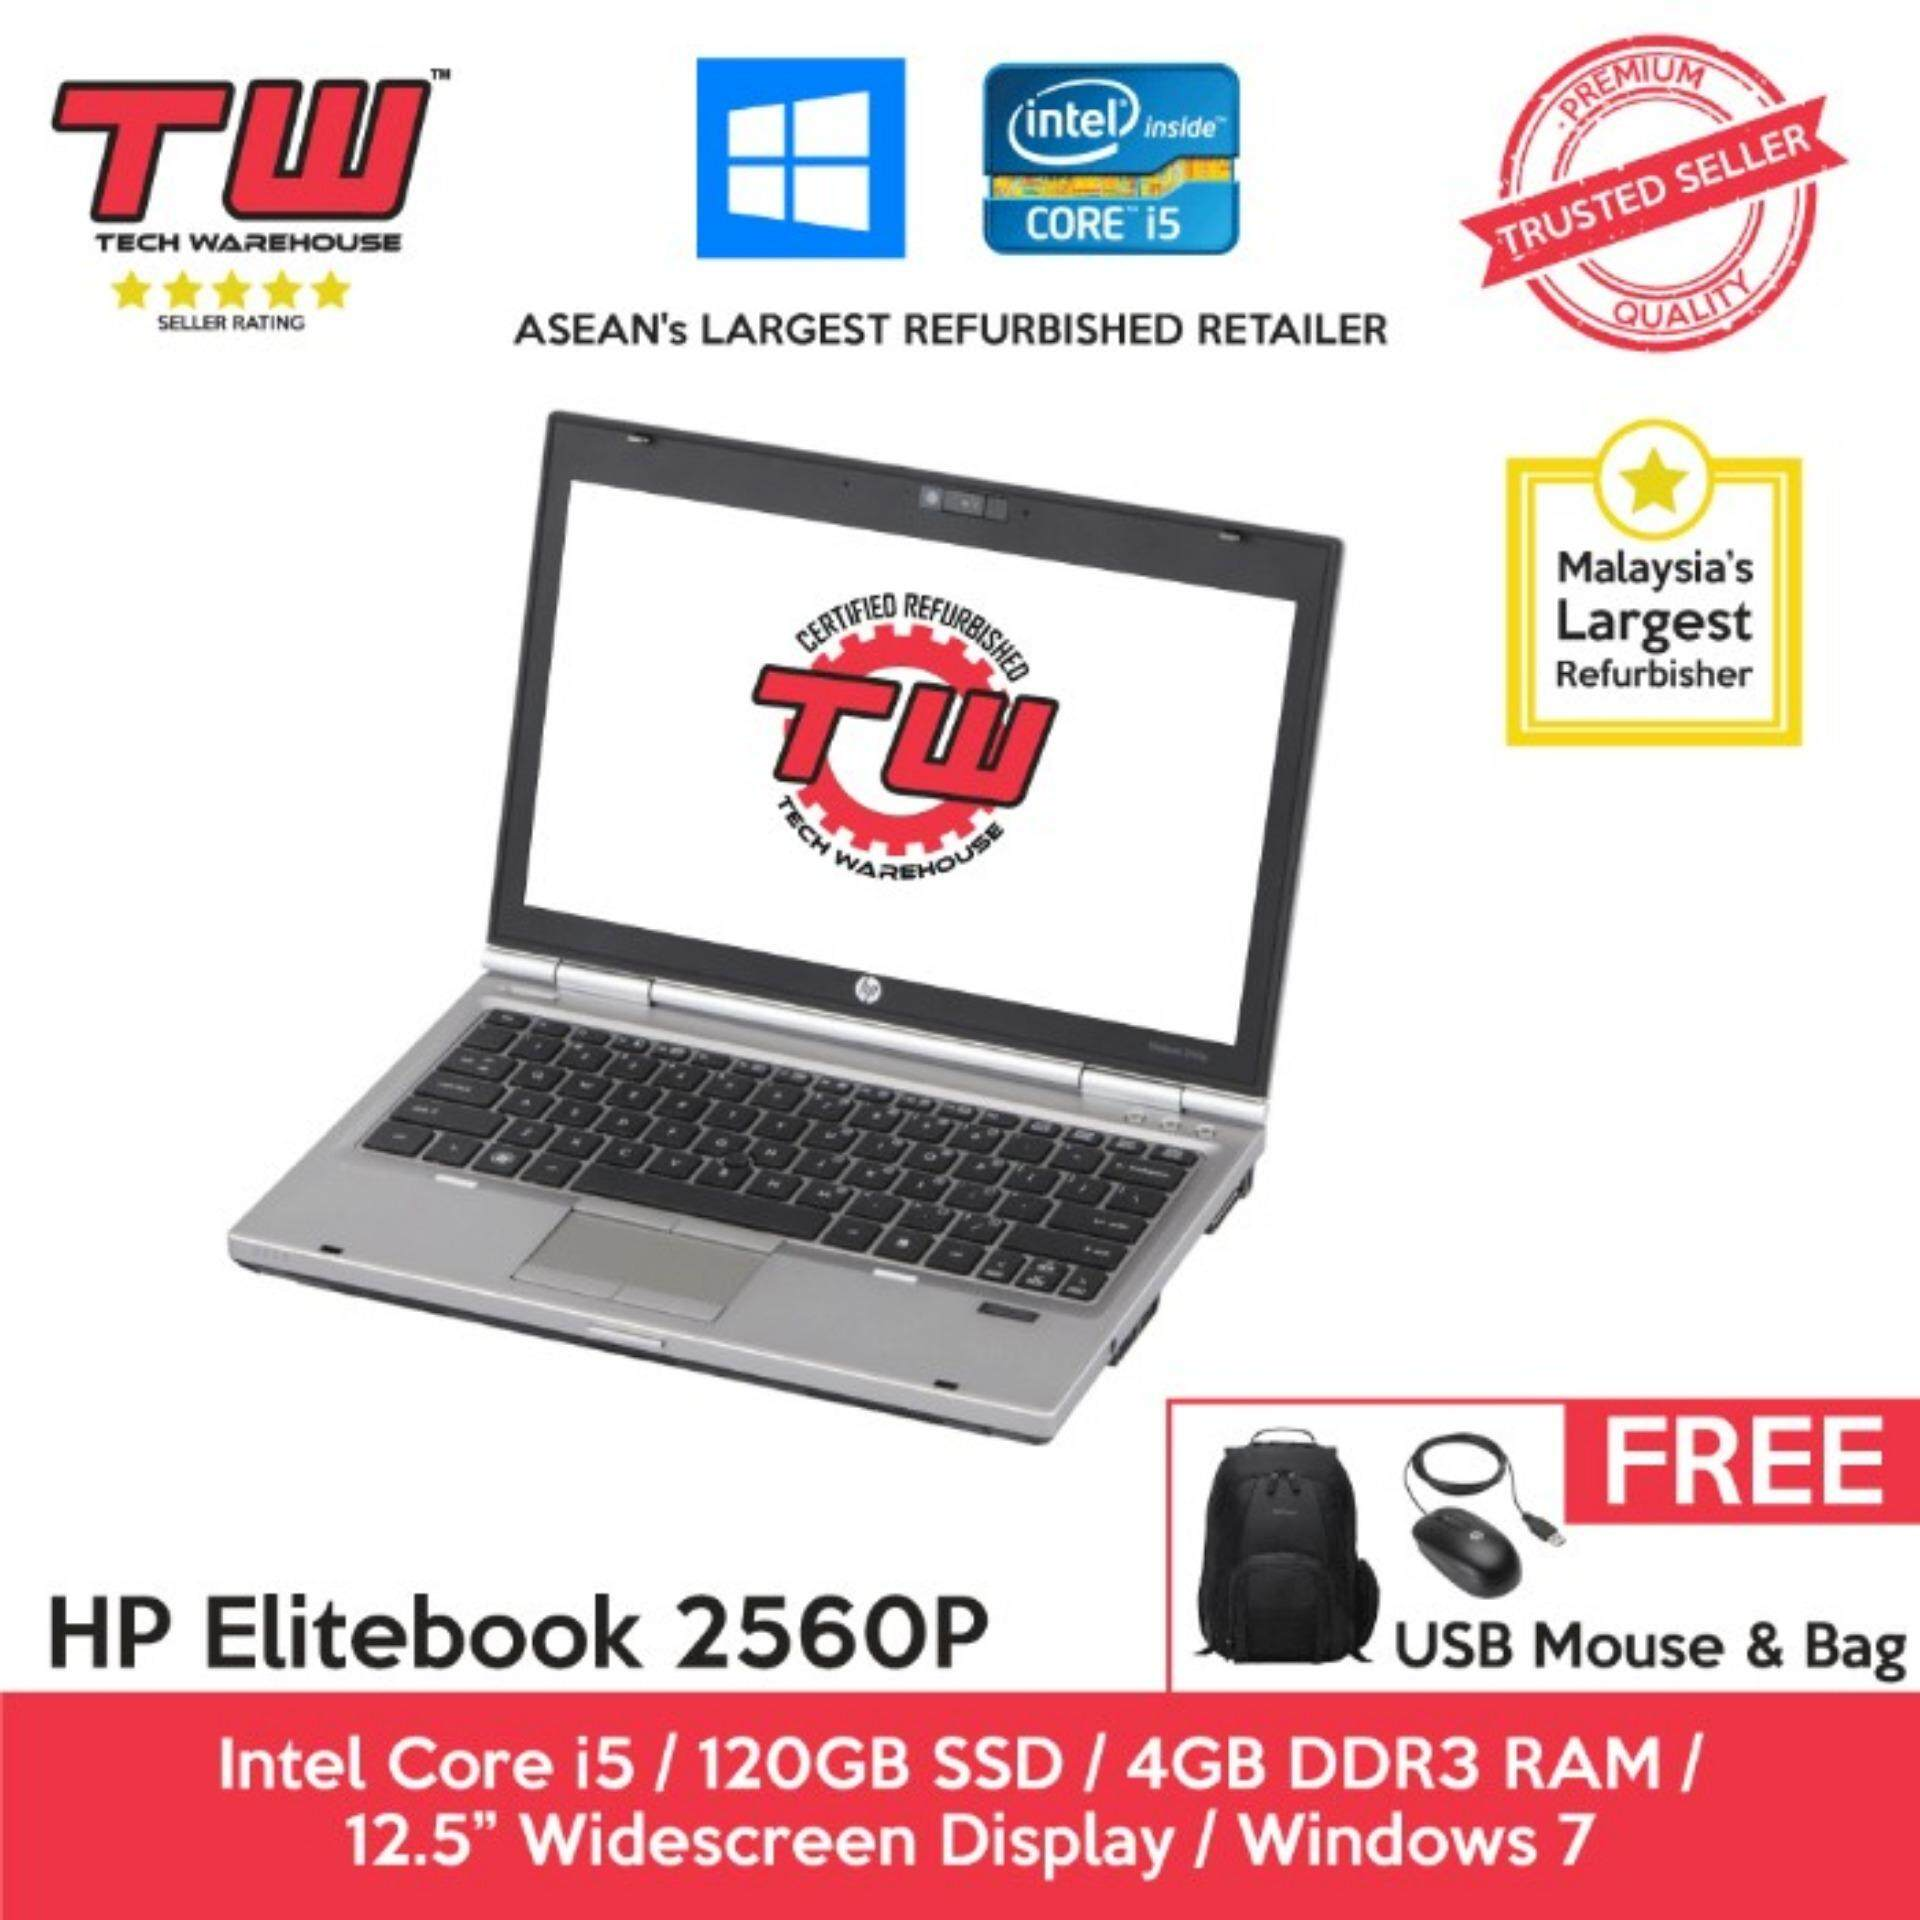 HP Elitebook 2560p Core i5 2.6 GHz / 4GB RAM / 120GB SSD / Windows 7 Laptop / 3 Months Warranty (Factory Refurbished) Malaysia